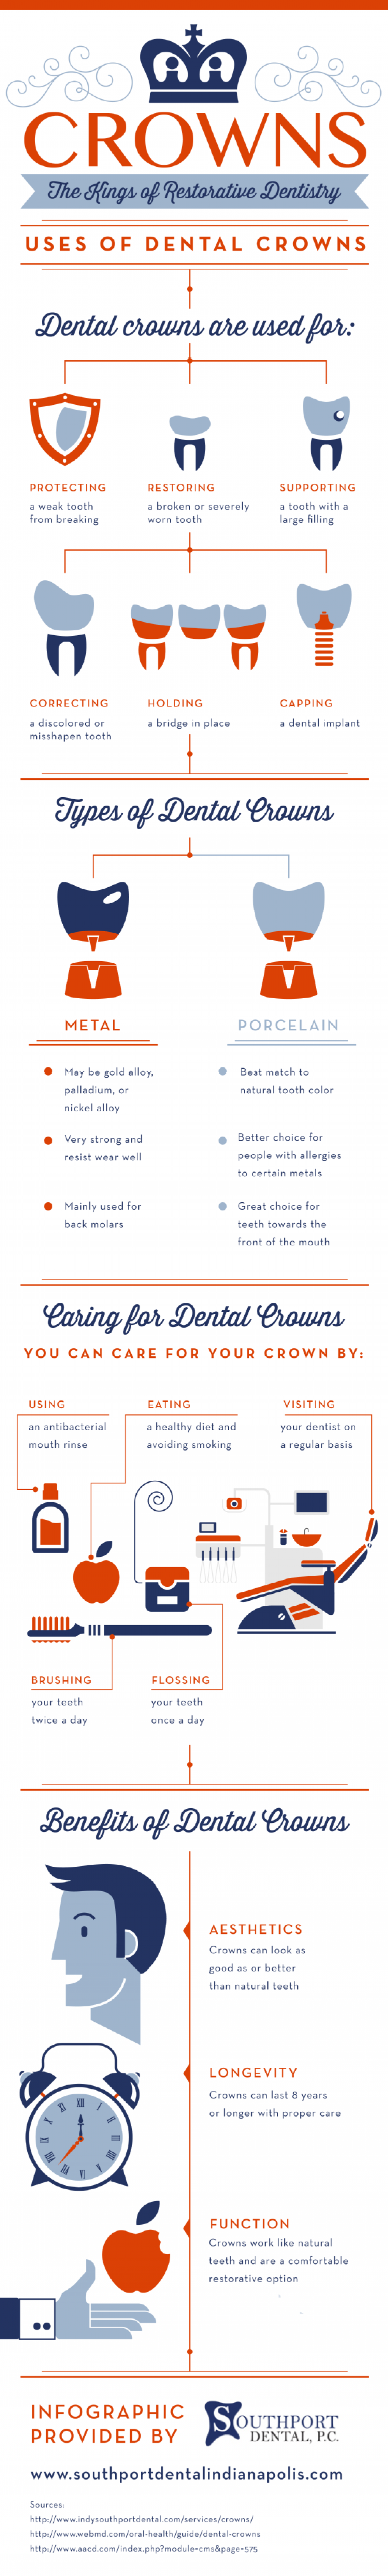 Crowns: The Kings of Restorative Dentistry  Infographic